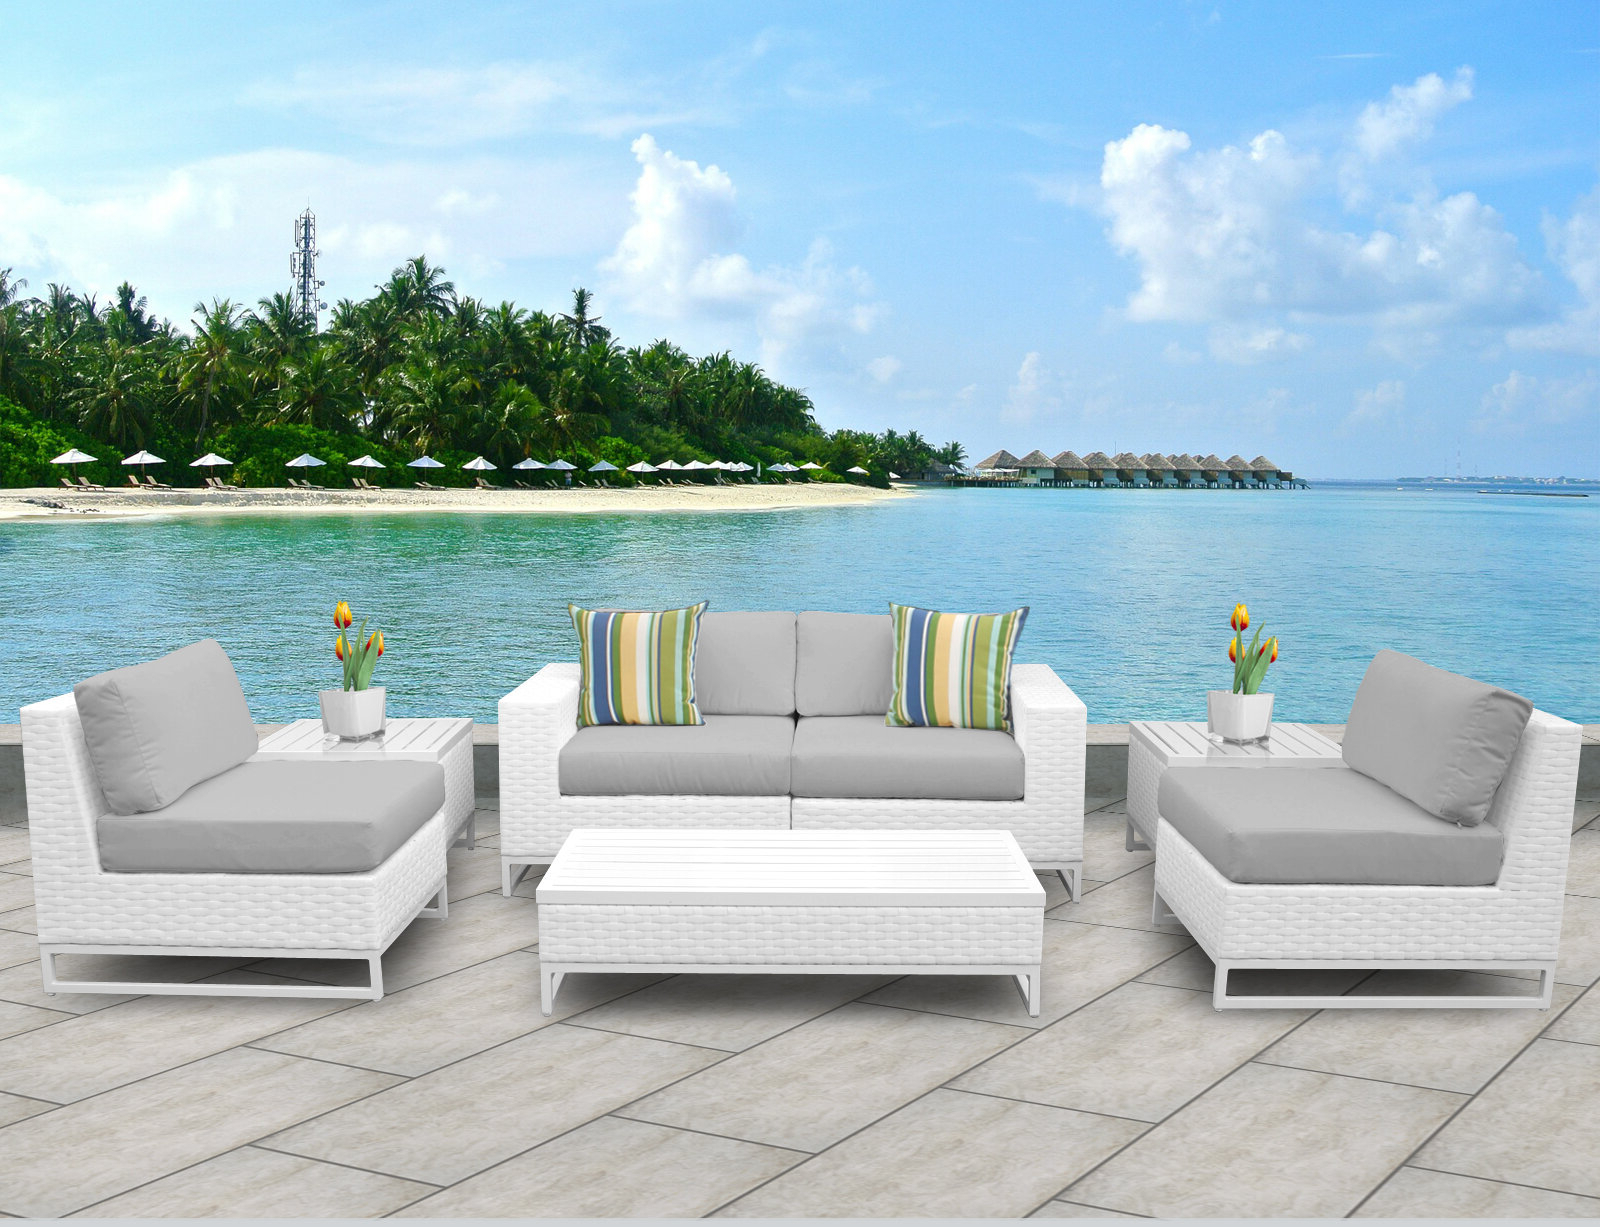 Current Menifee Patio Sofas With Cushions With Regard To Menifee 7 Piece Sofa Set With Cushions (View 4 of 25)